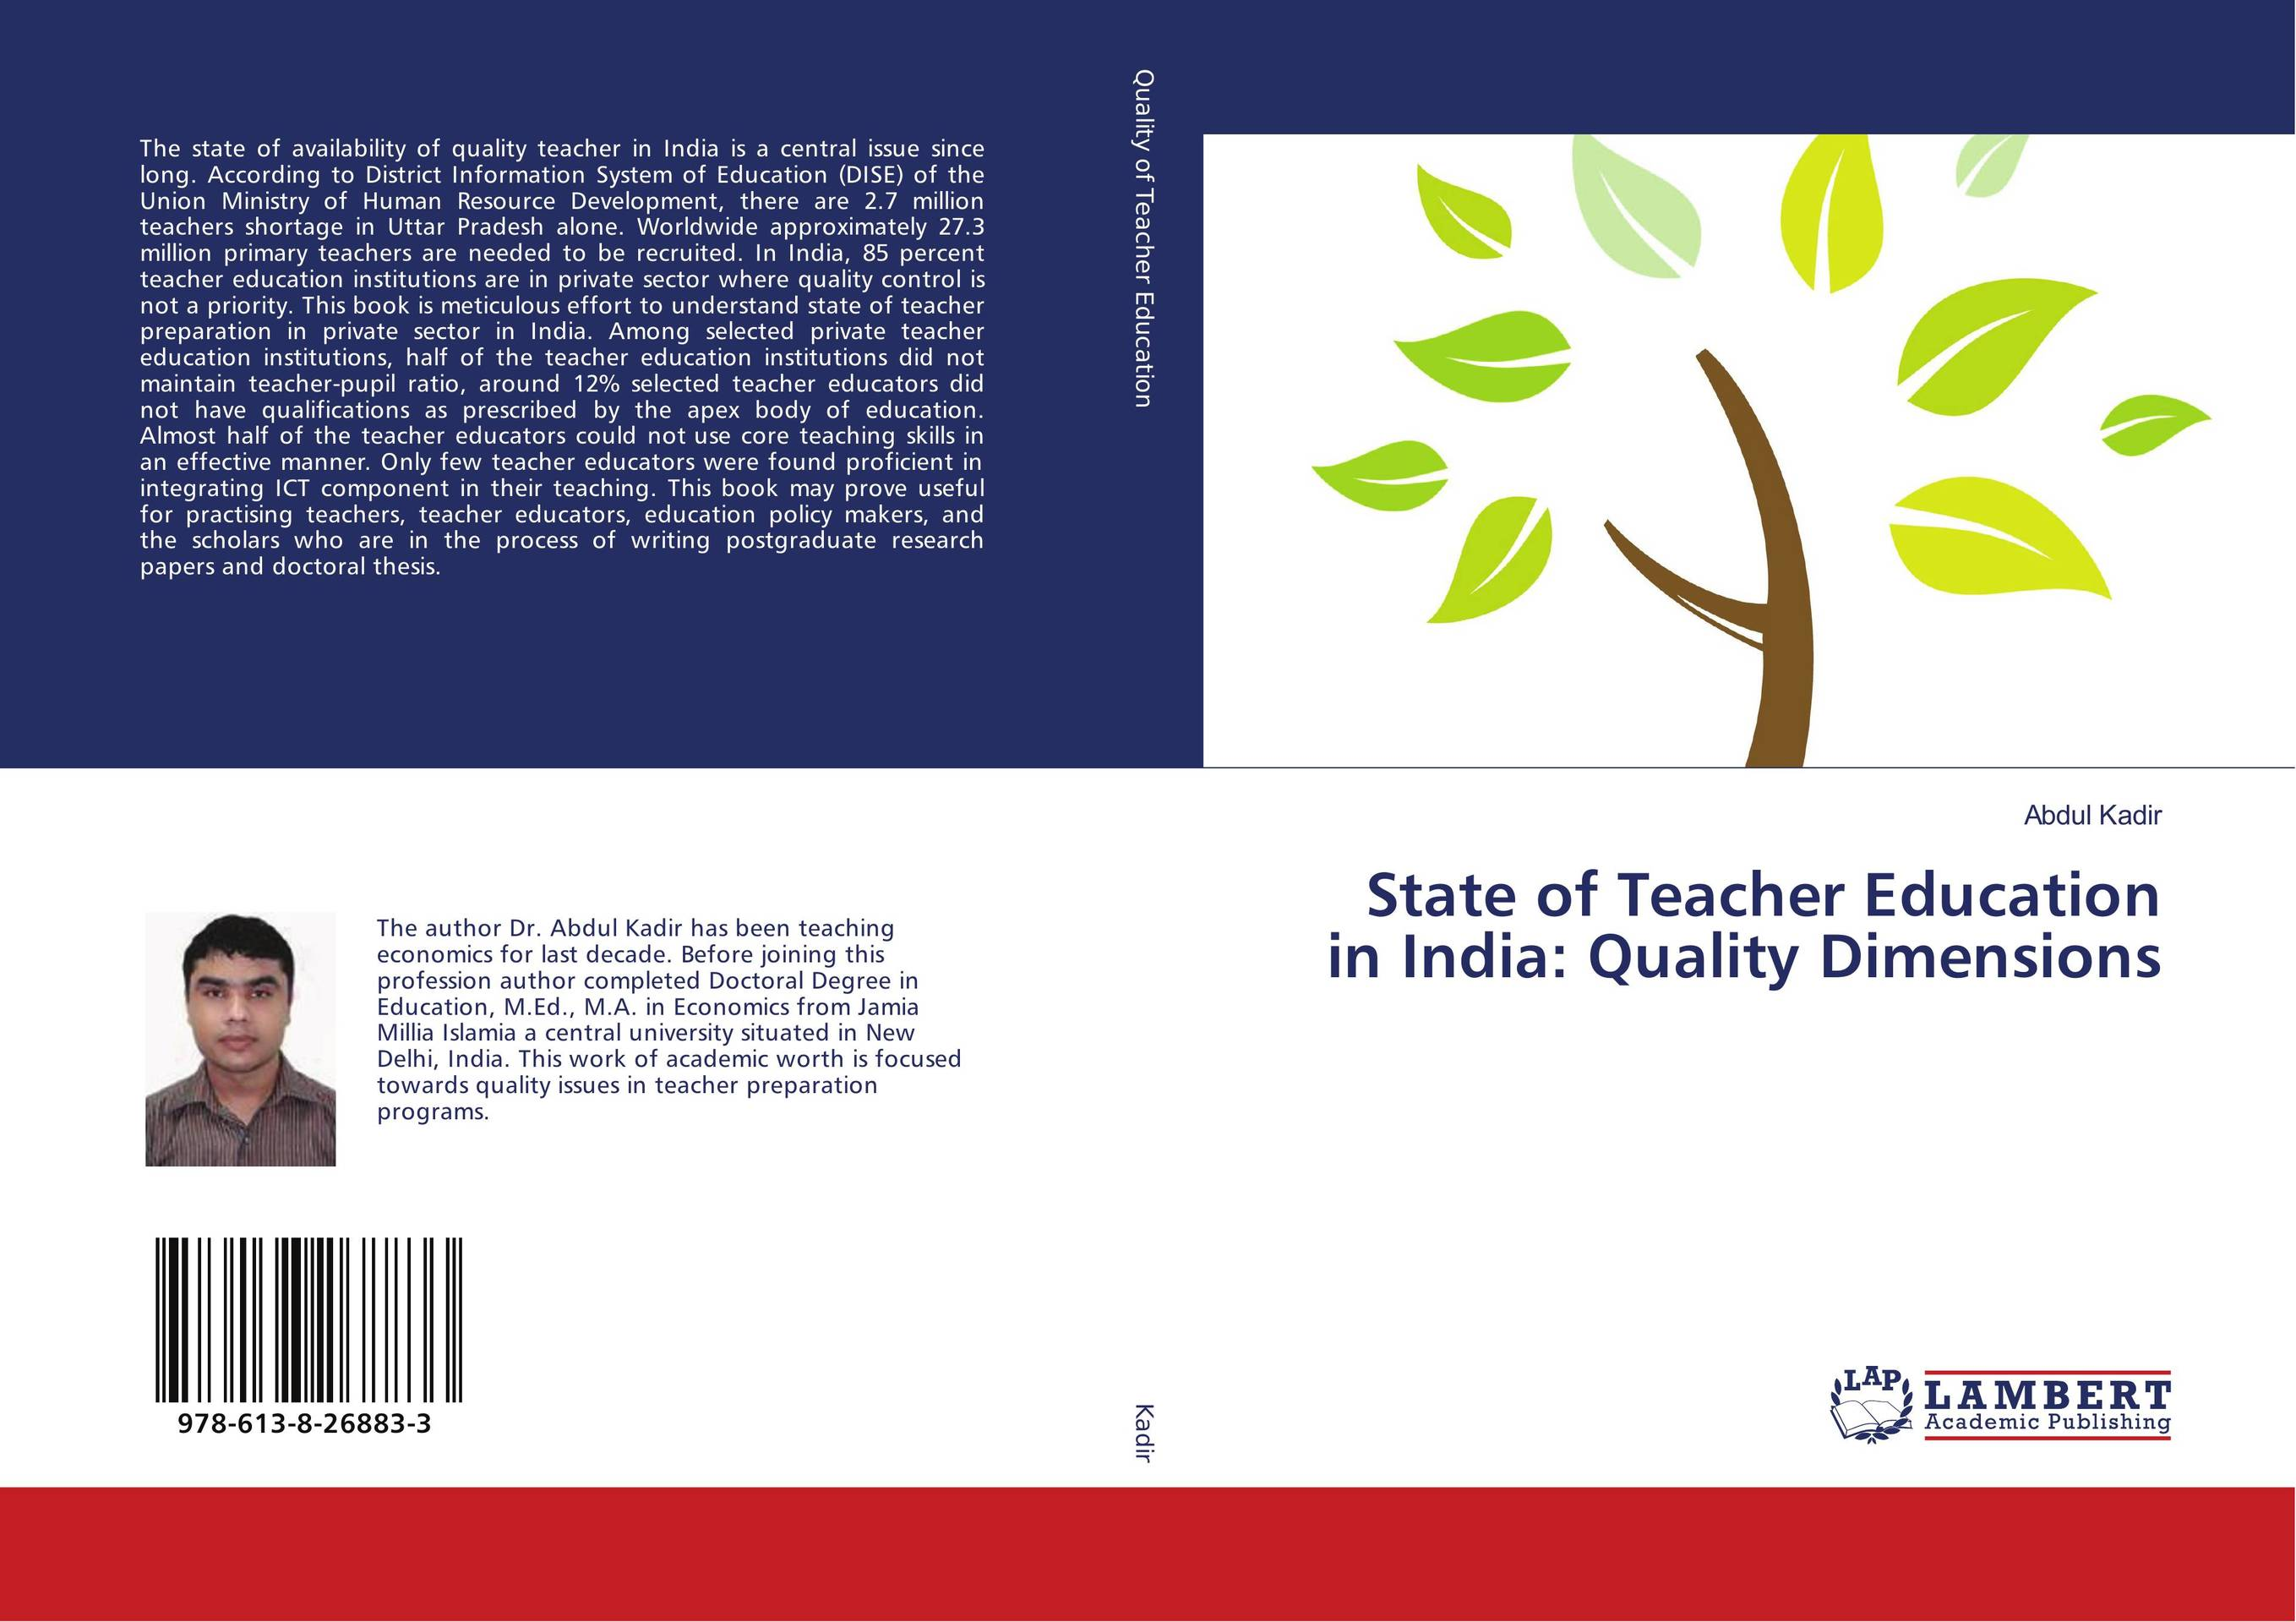 thesis publishers in india Thesis india is india's oldest and trusted phd consulting company offering phd thesis help, project help and consultation services in india the proof that our writers do not use previously published material lies in the fact that we provide plagiarism report free of cost at the time of delivery of the thesis.